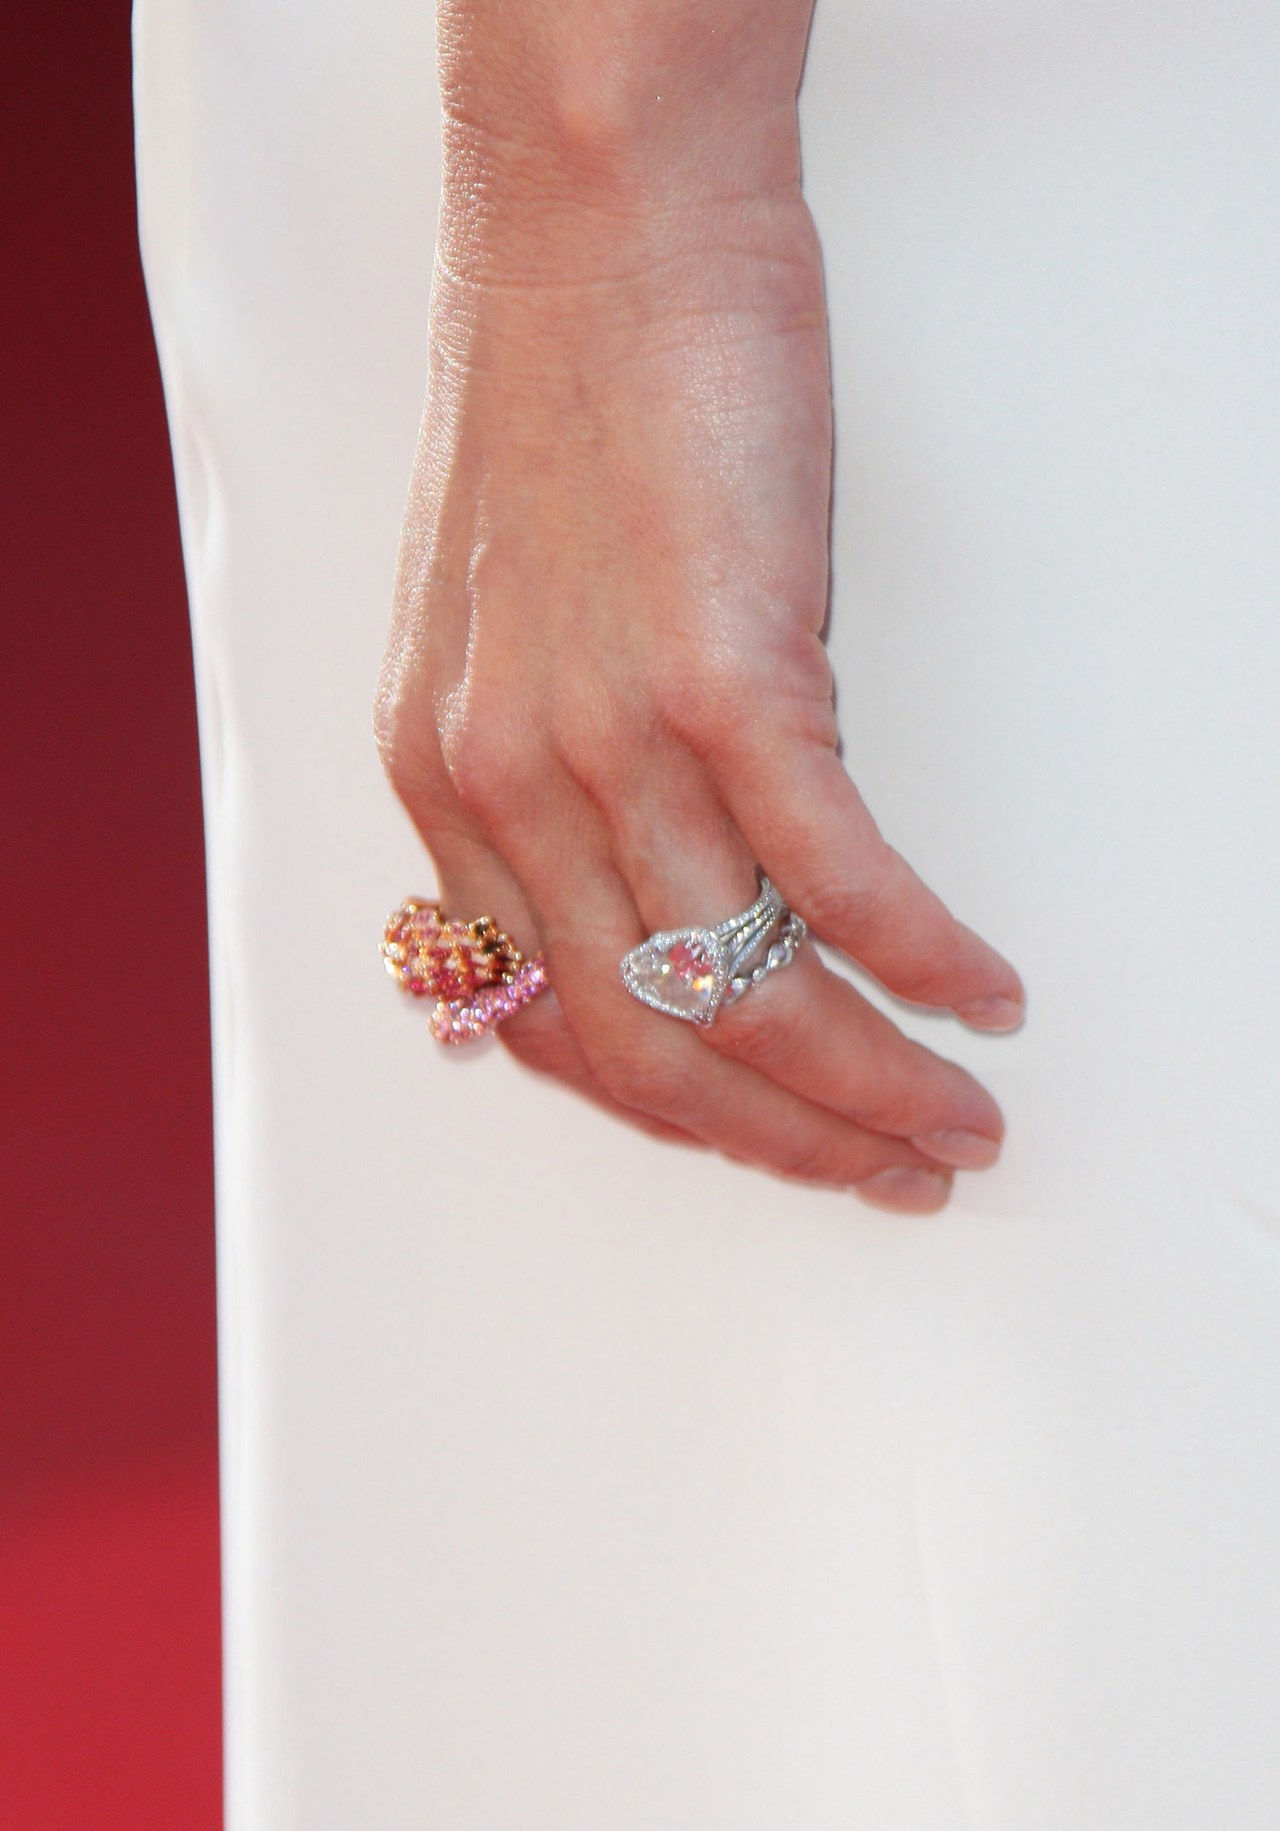 3 gwen stefani engagement ring pictures 0522